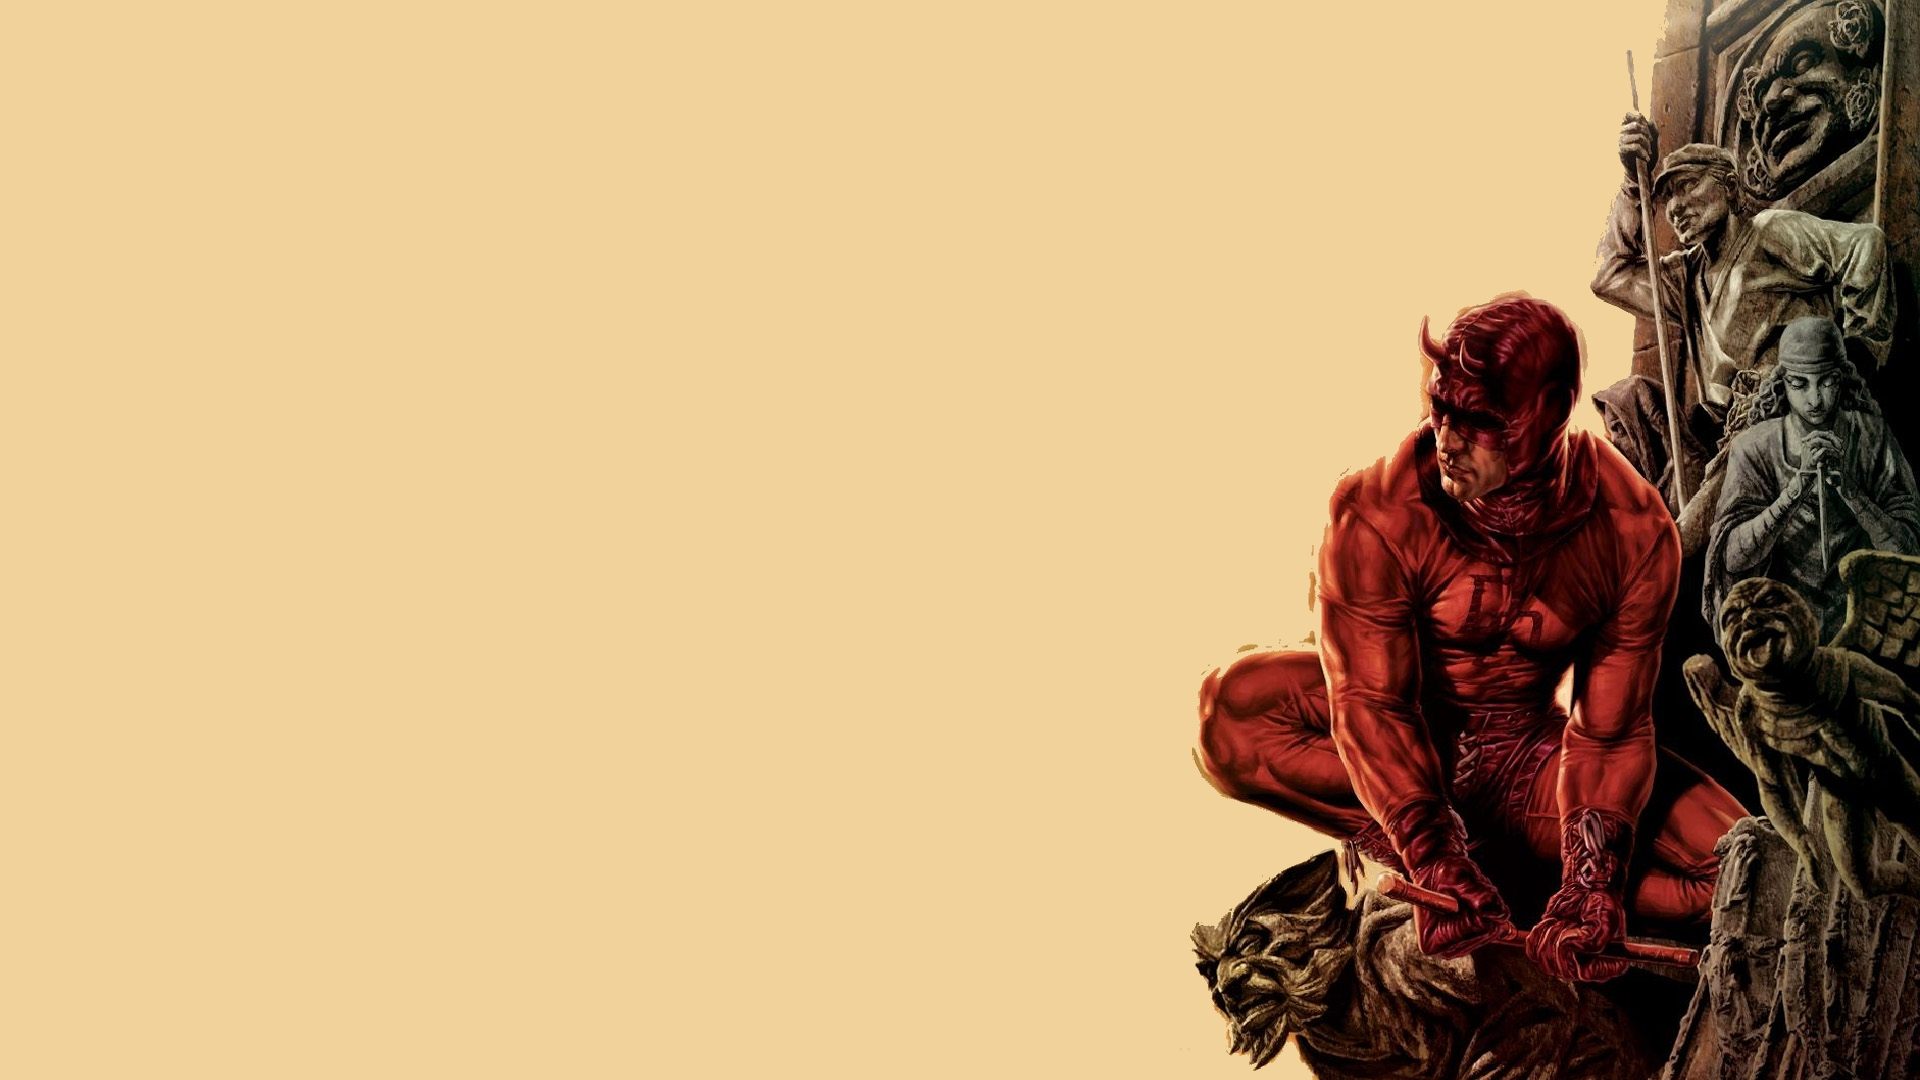 daredevil wallpaper in - photo #46